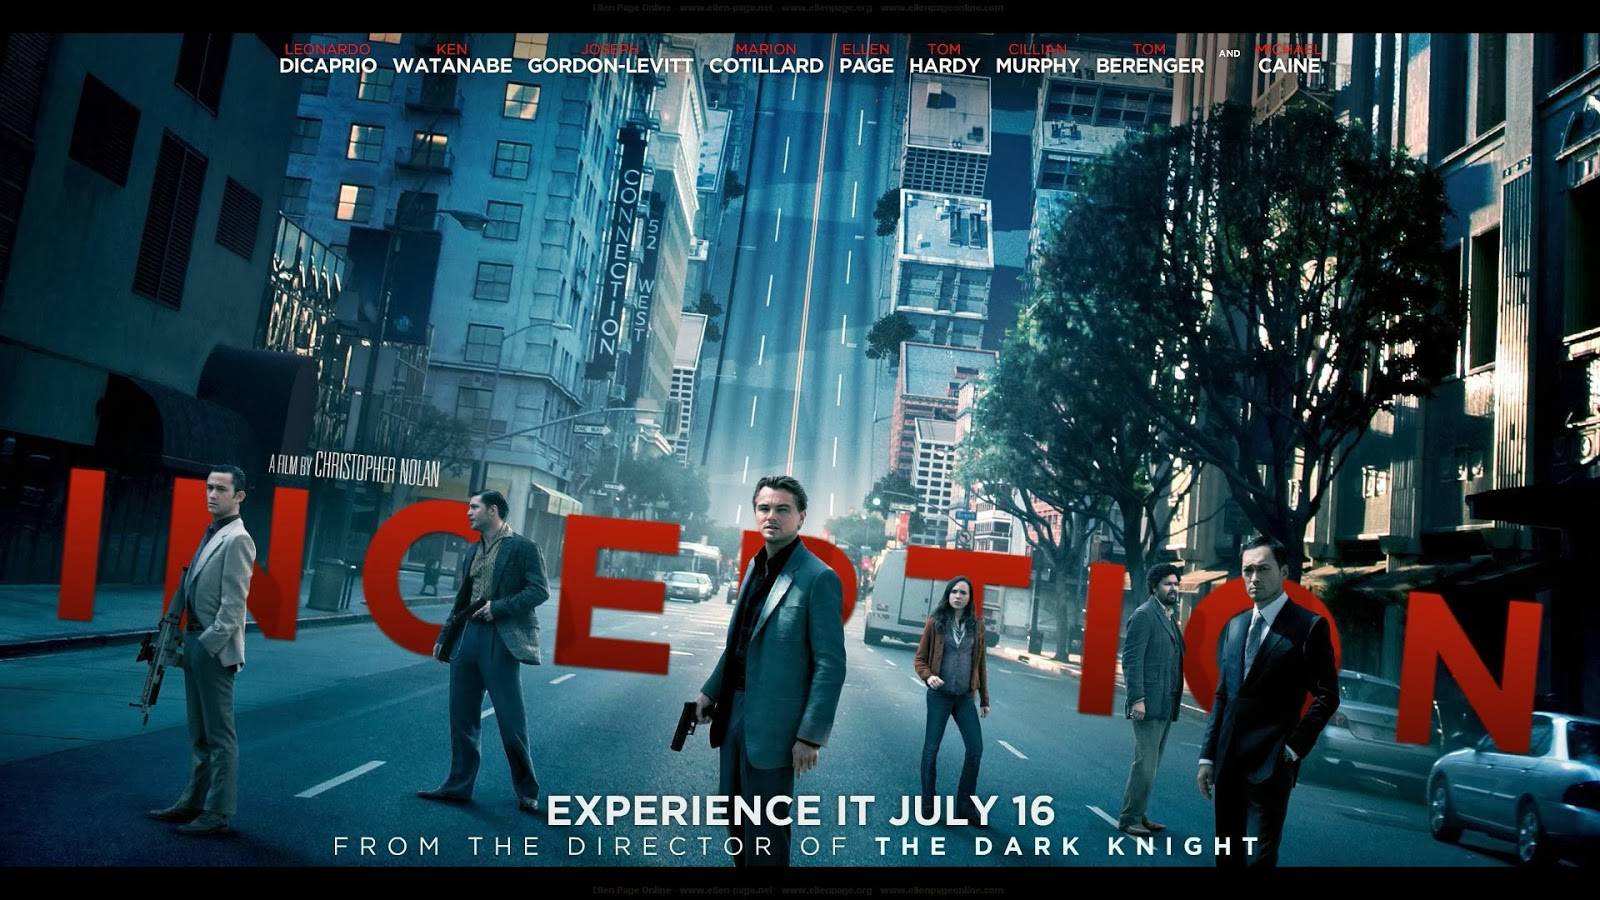 Watch Free Inception (2010) M Watch Free Movie Online Watch Free Inception 2010 Movie 1600x900 Movie-index.com